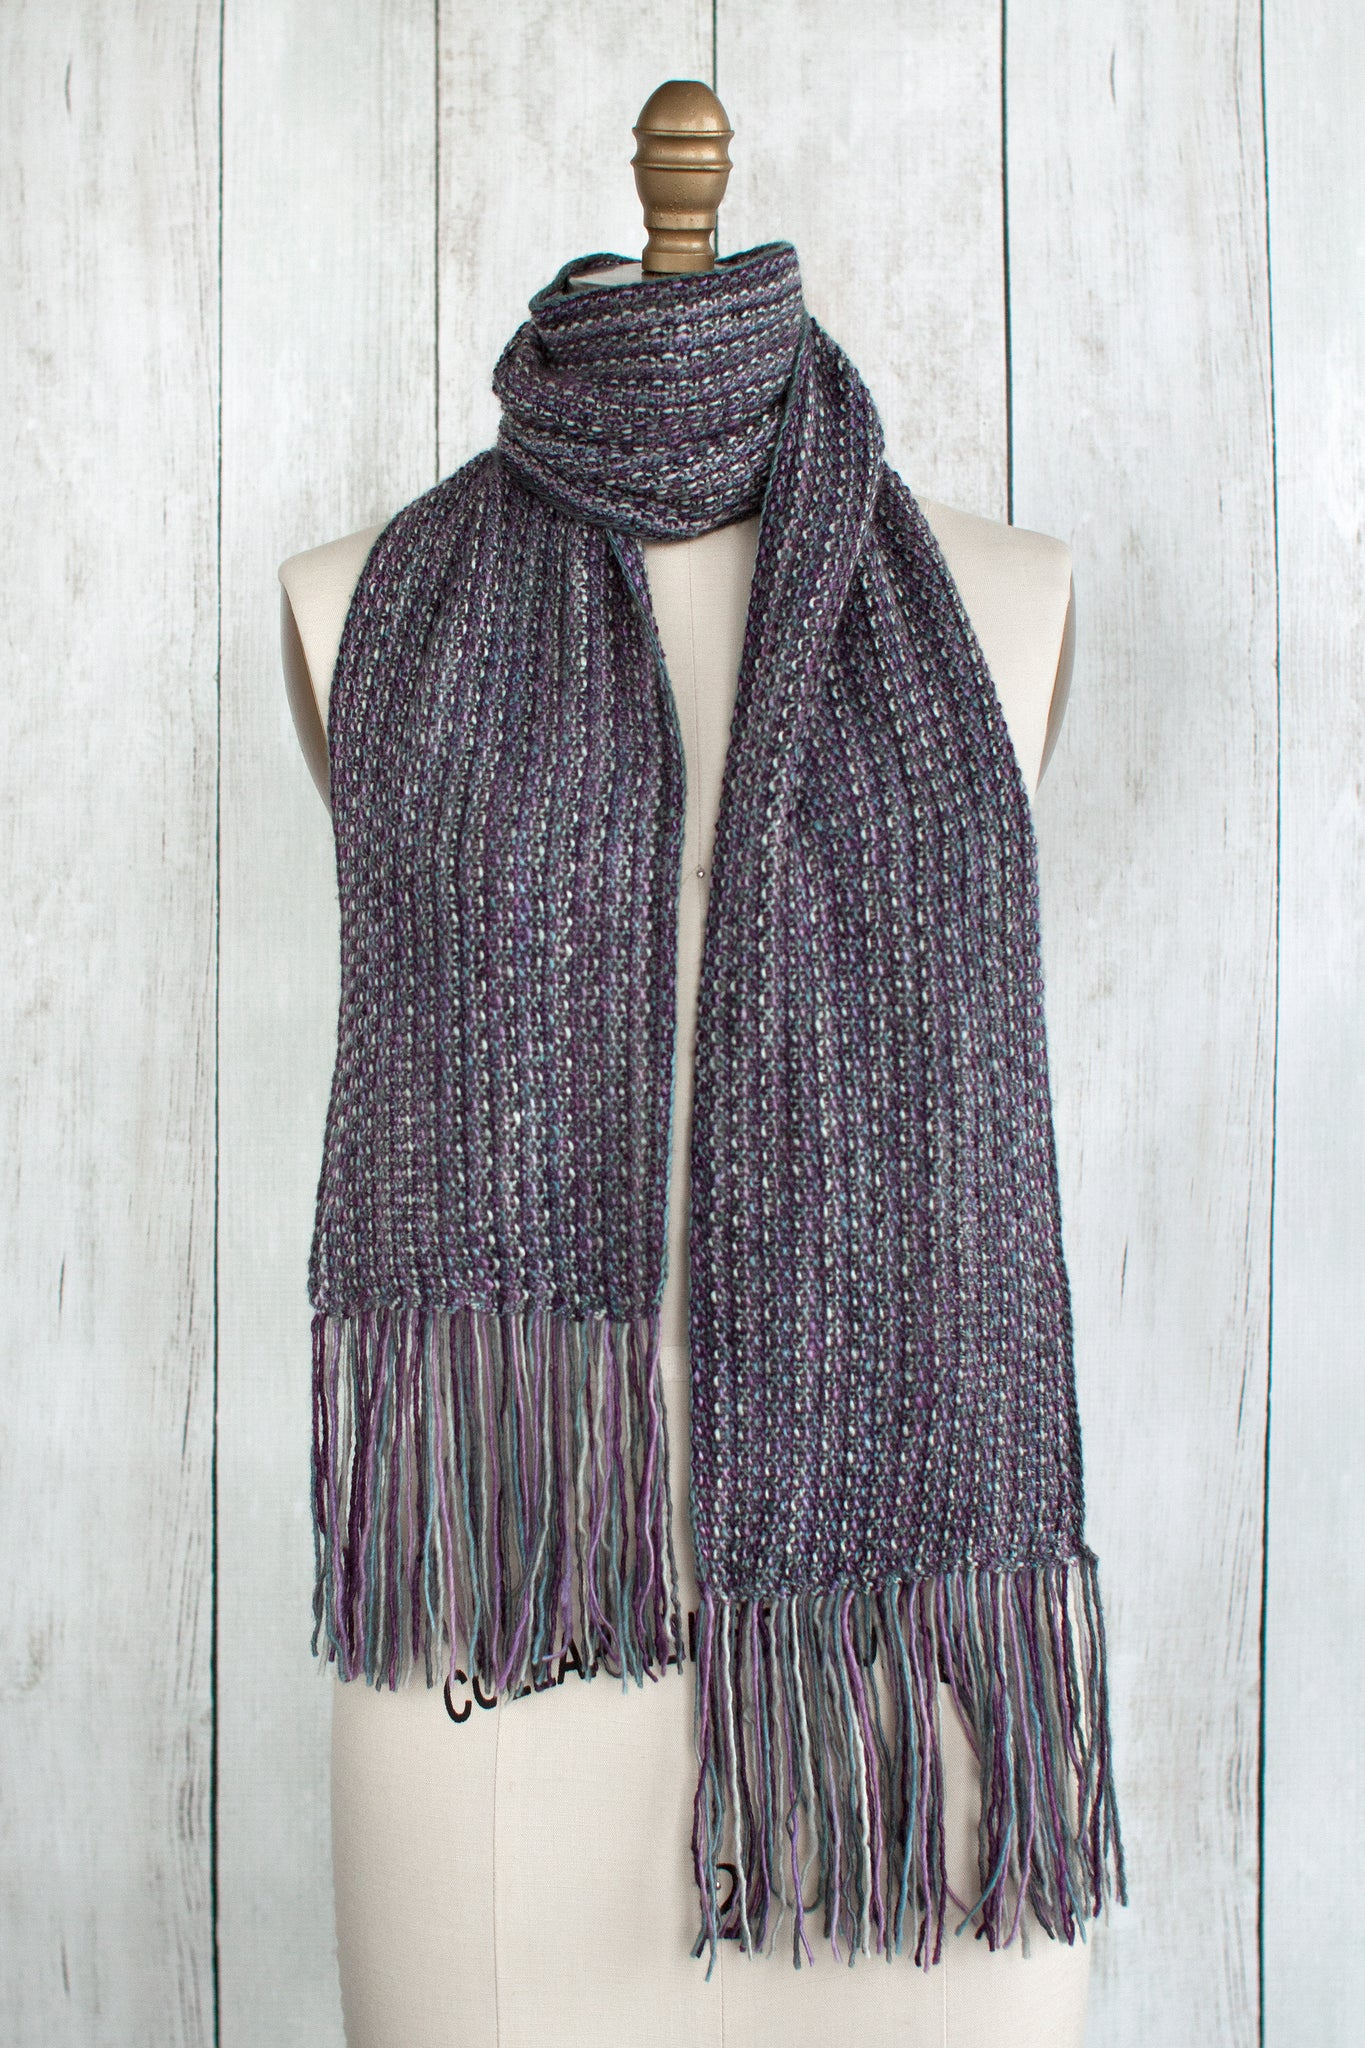 Knitted Fringed Violet Scarf in seed stitch